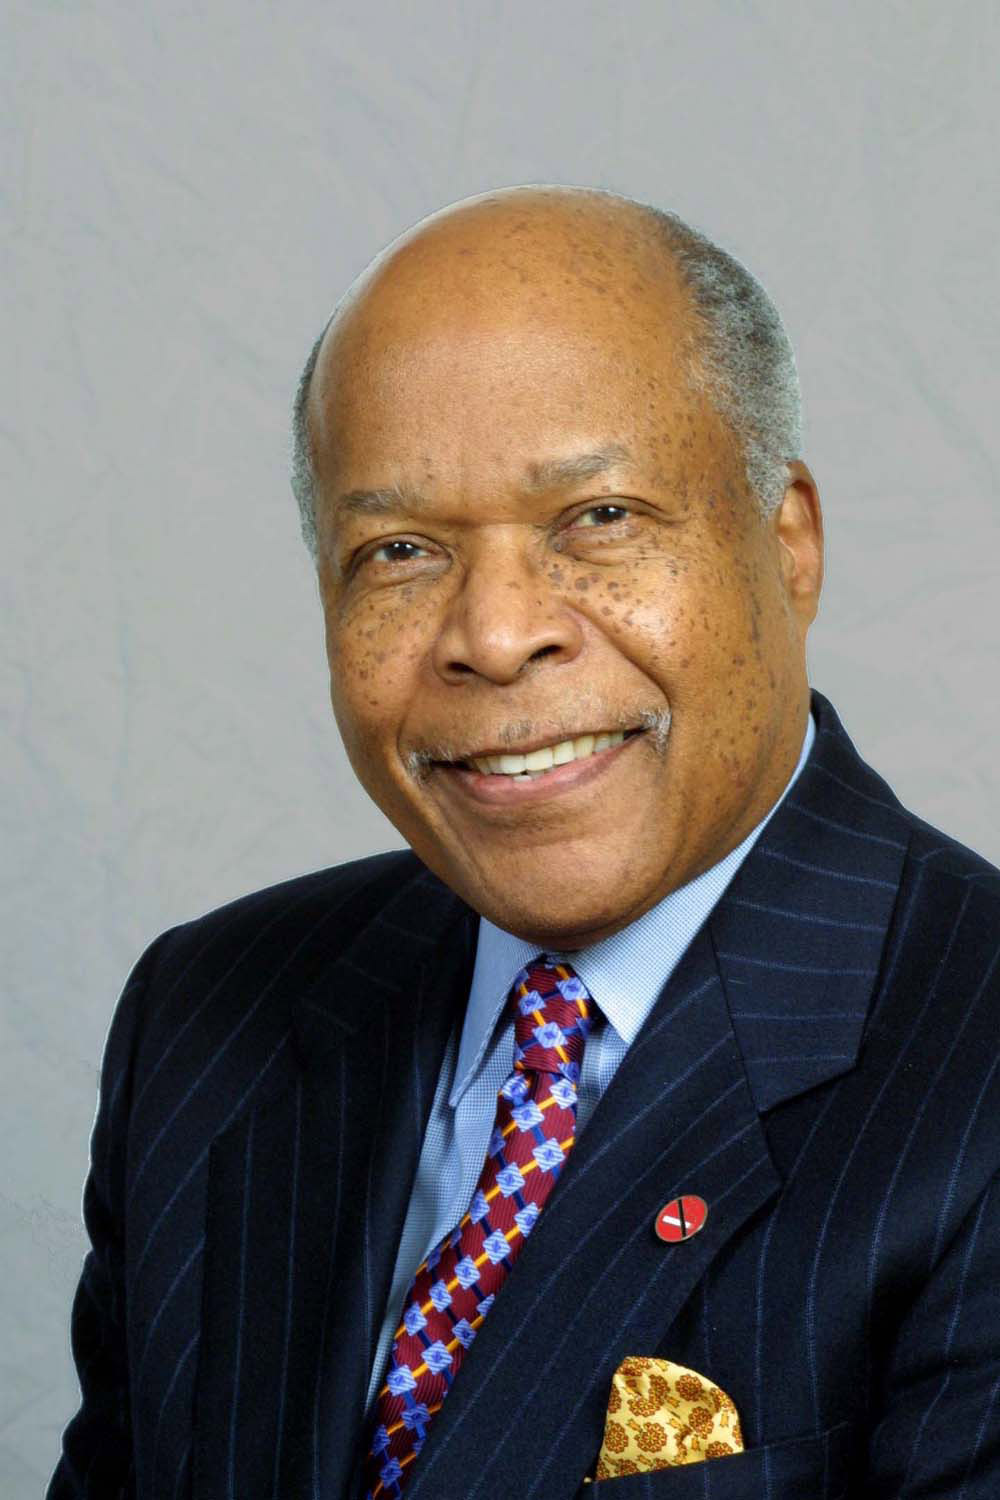 Morehouse School Of Medicine Launches 40th Anniversary At